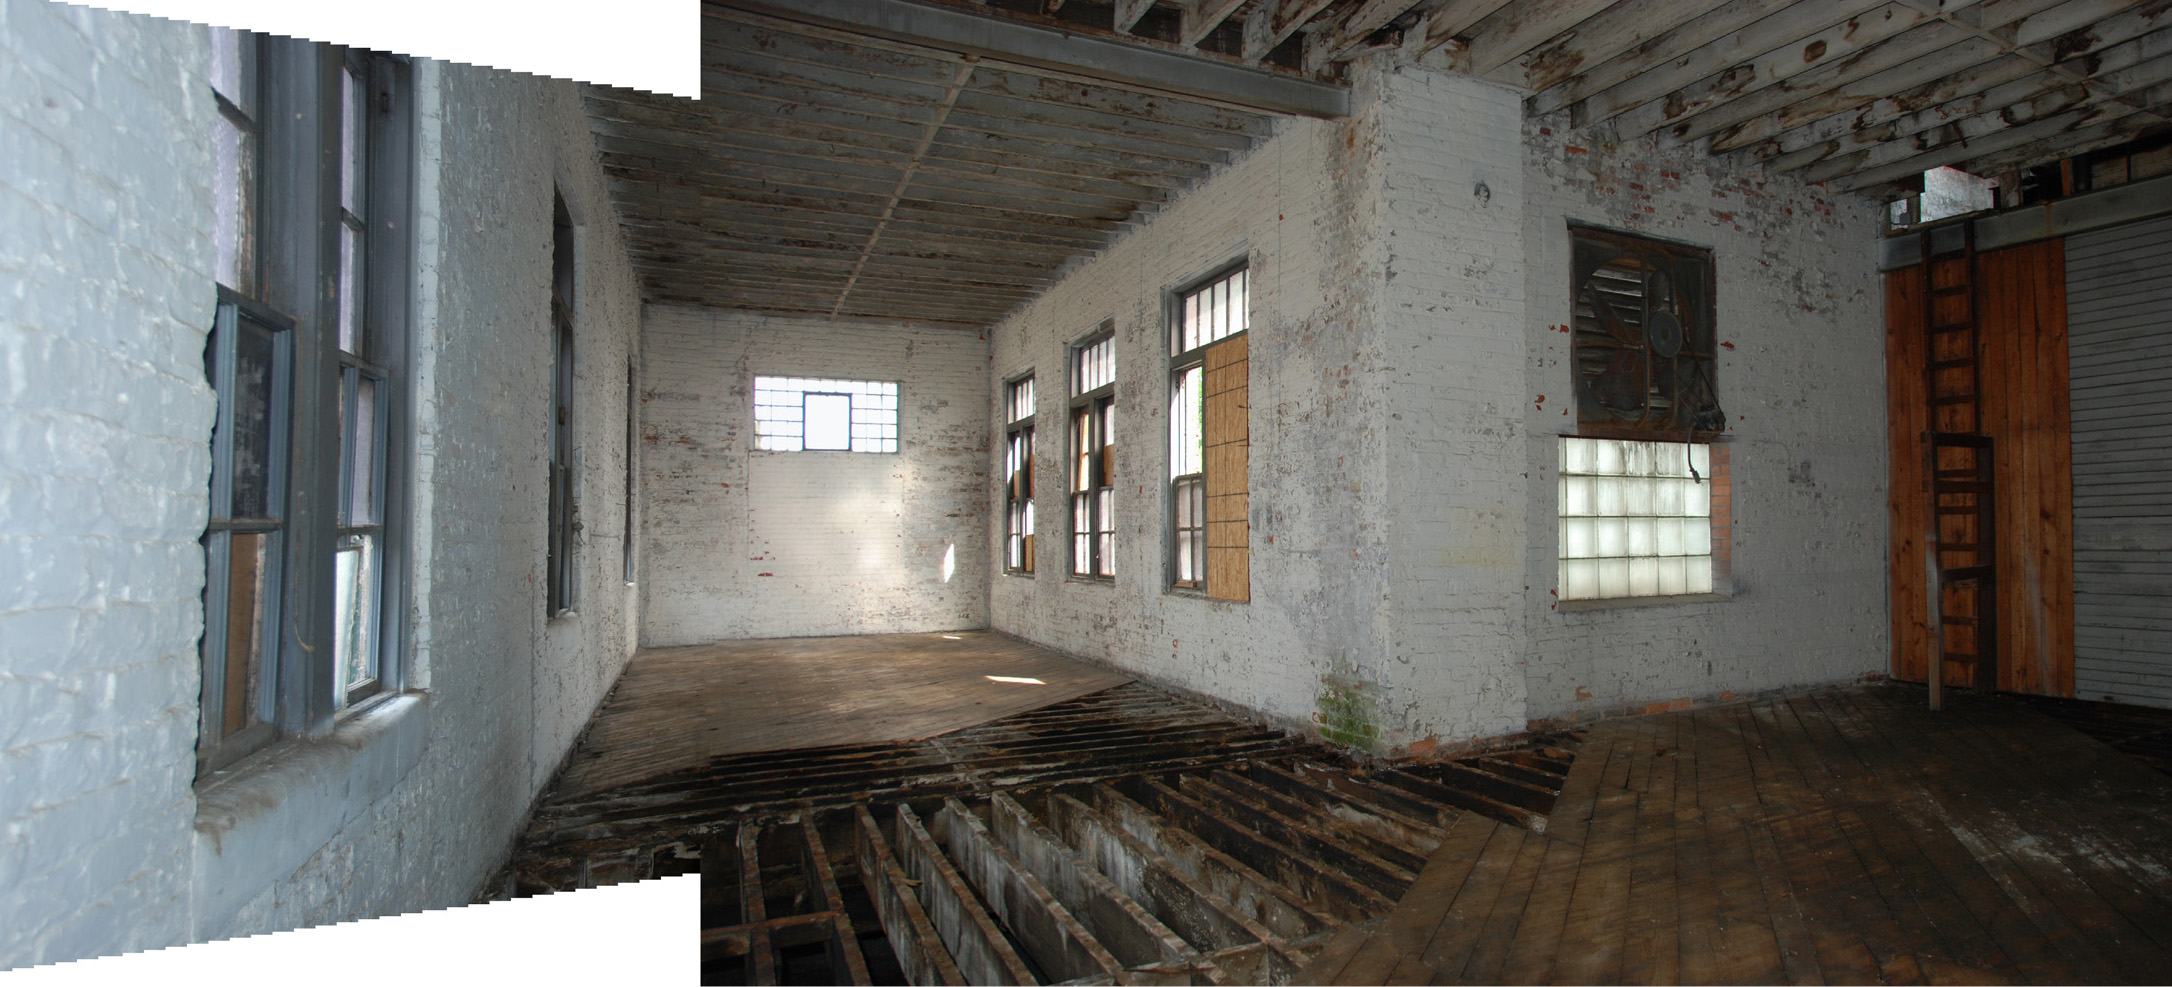 Upper Level After Demolition